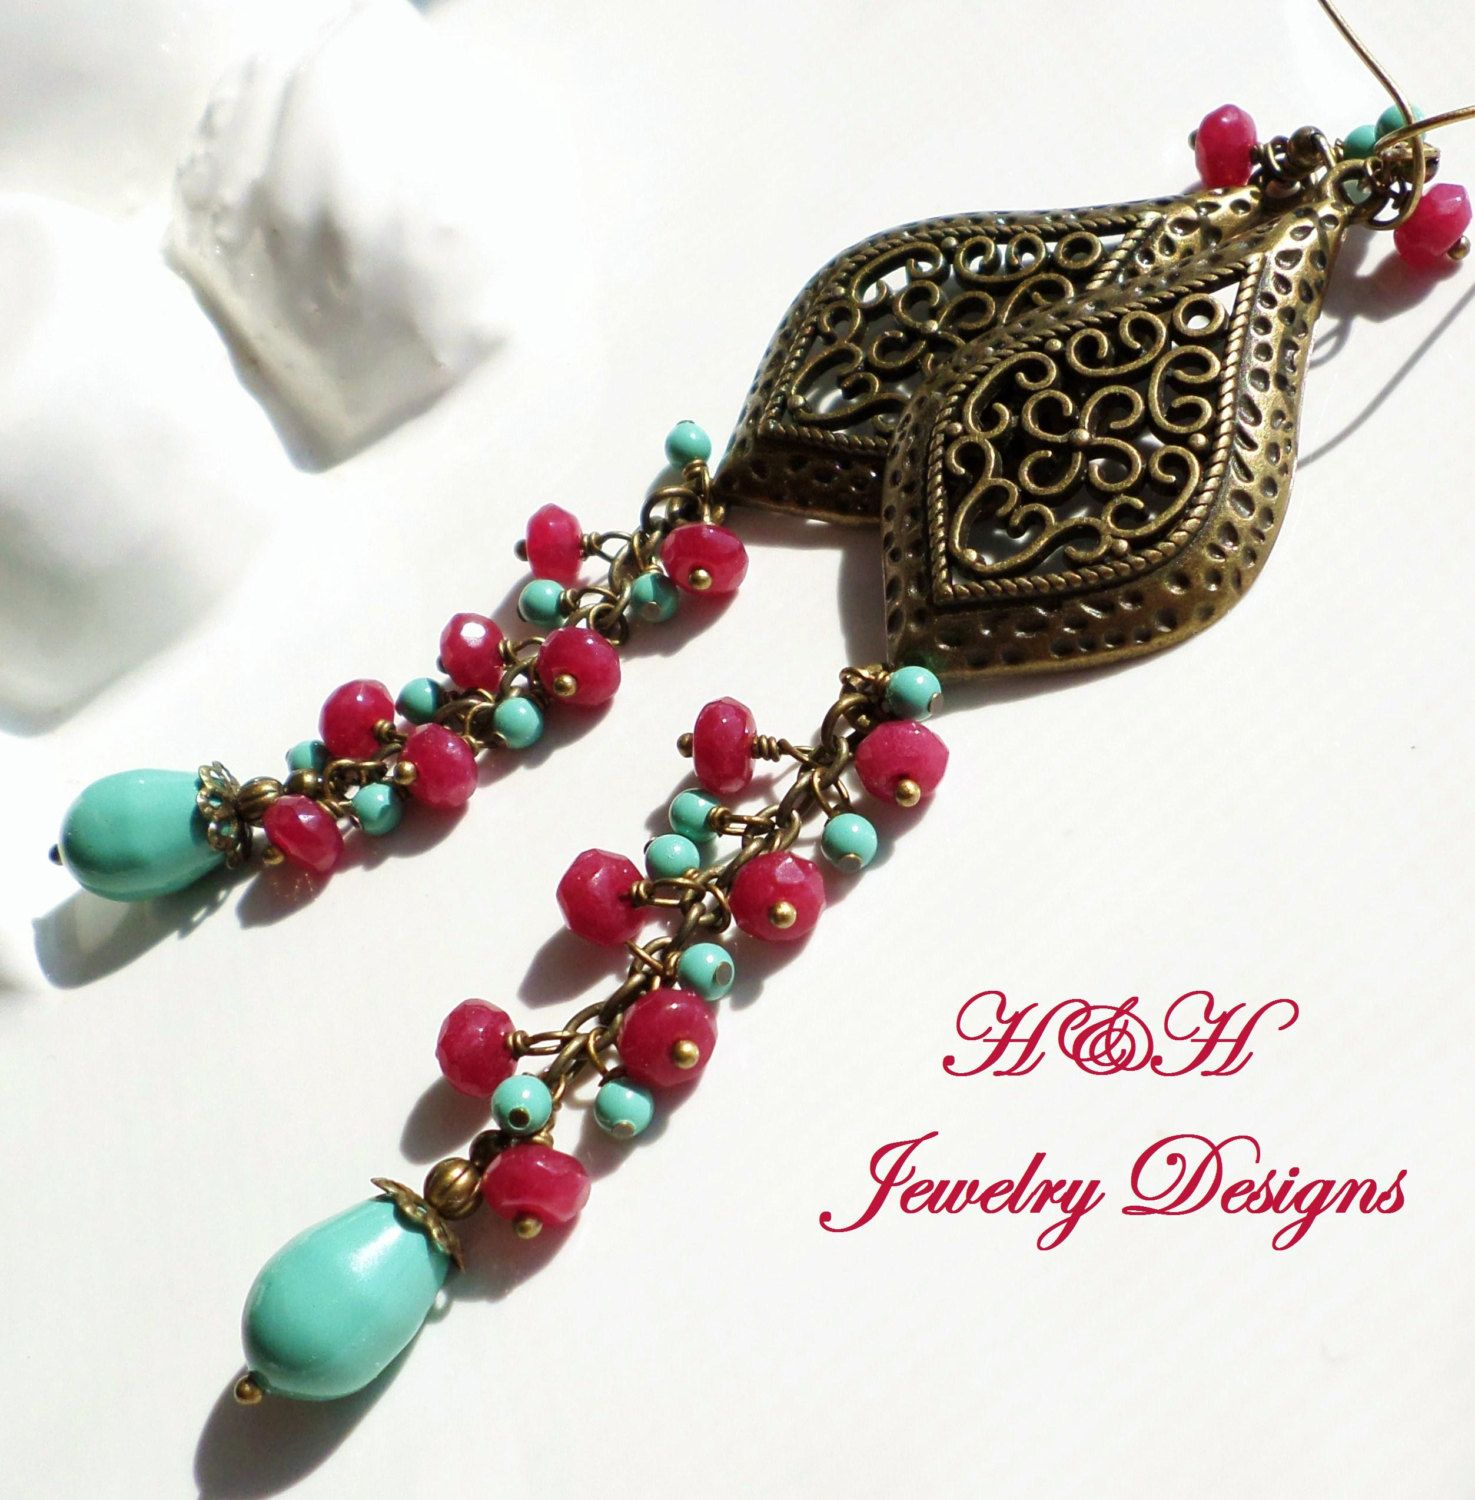 Brass Long Chandelier Earrings With Berry Colored Gems And Turquoise  Swarovski Pearls By Hhjewelrydesigns On Etsy